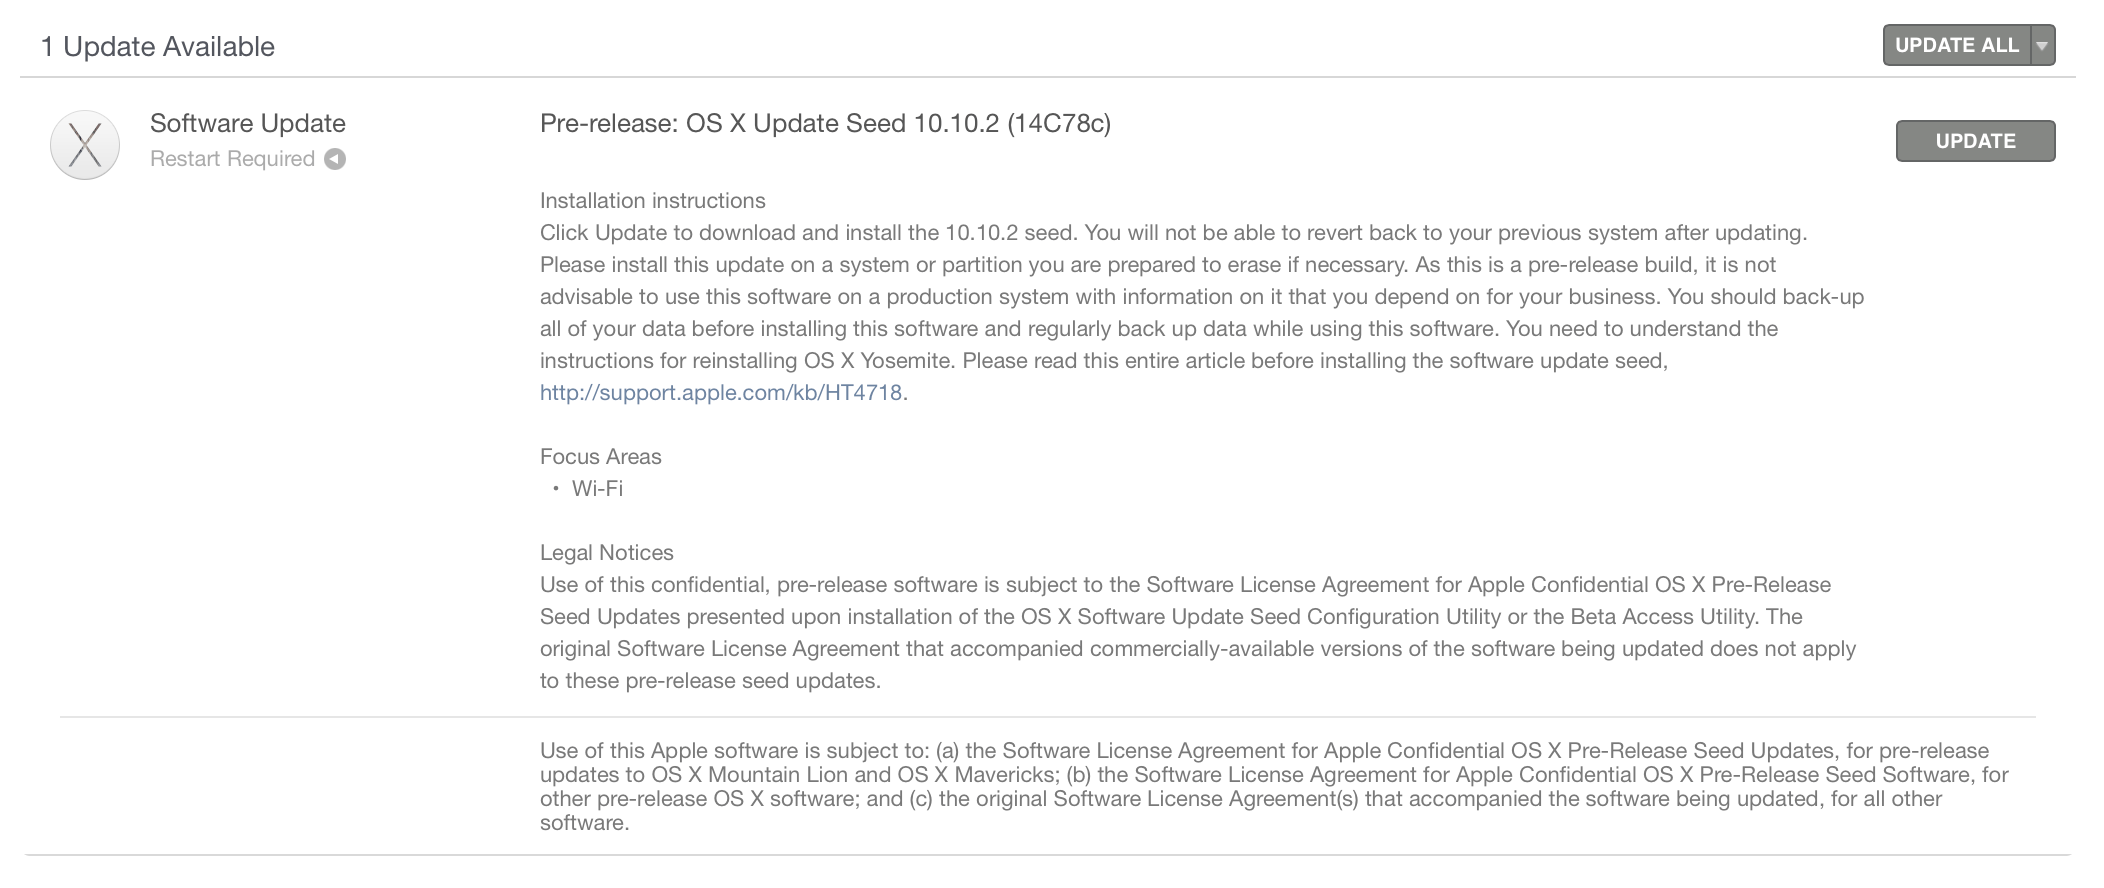 OS X Yosemite 10.10.2 beta build 14C78c